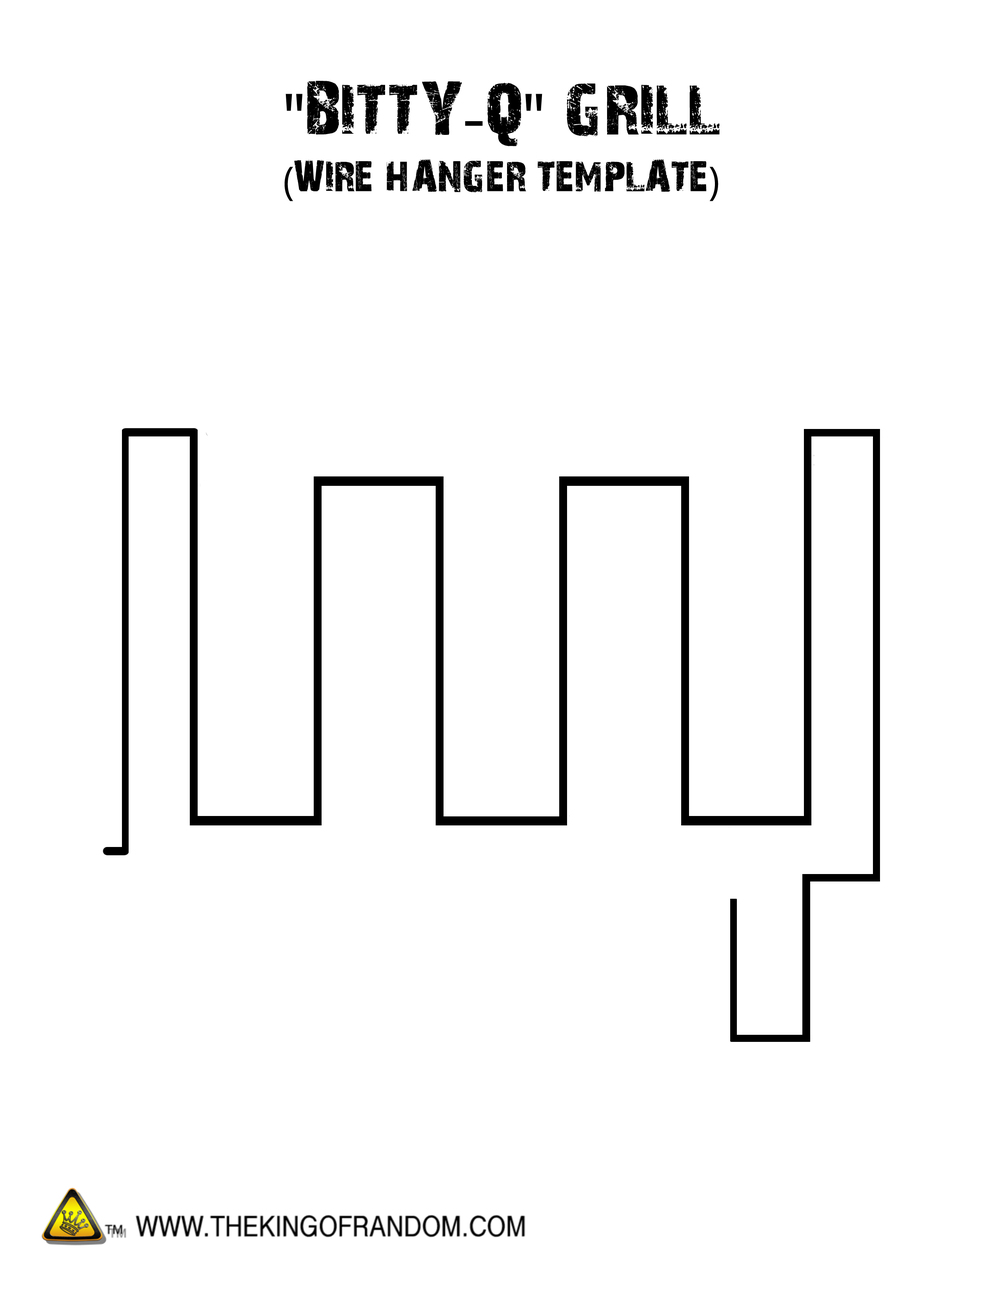 Coat hanger template.jpg